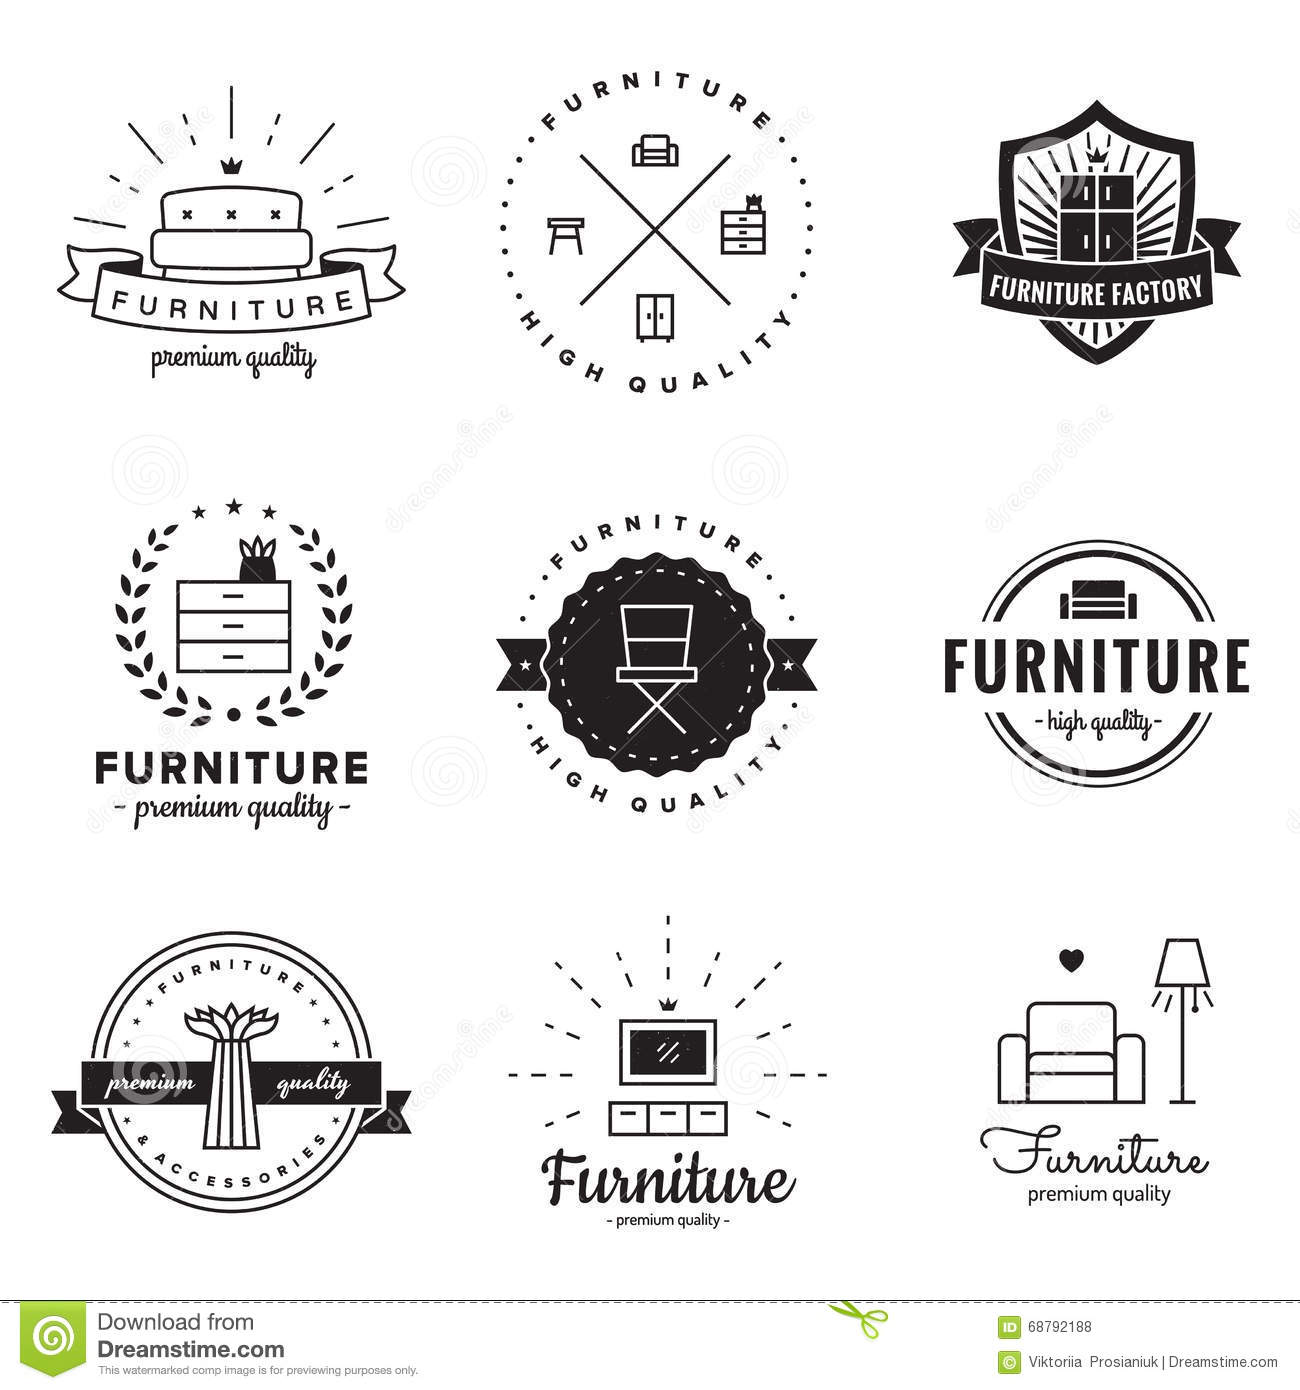 Furniture logo vector free download - Royalty Free Vector Business Design Furniture Hipster Logo